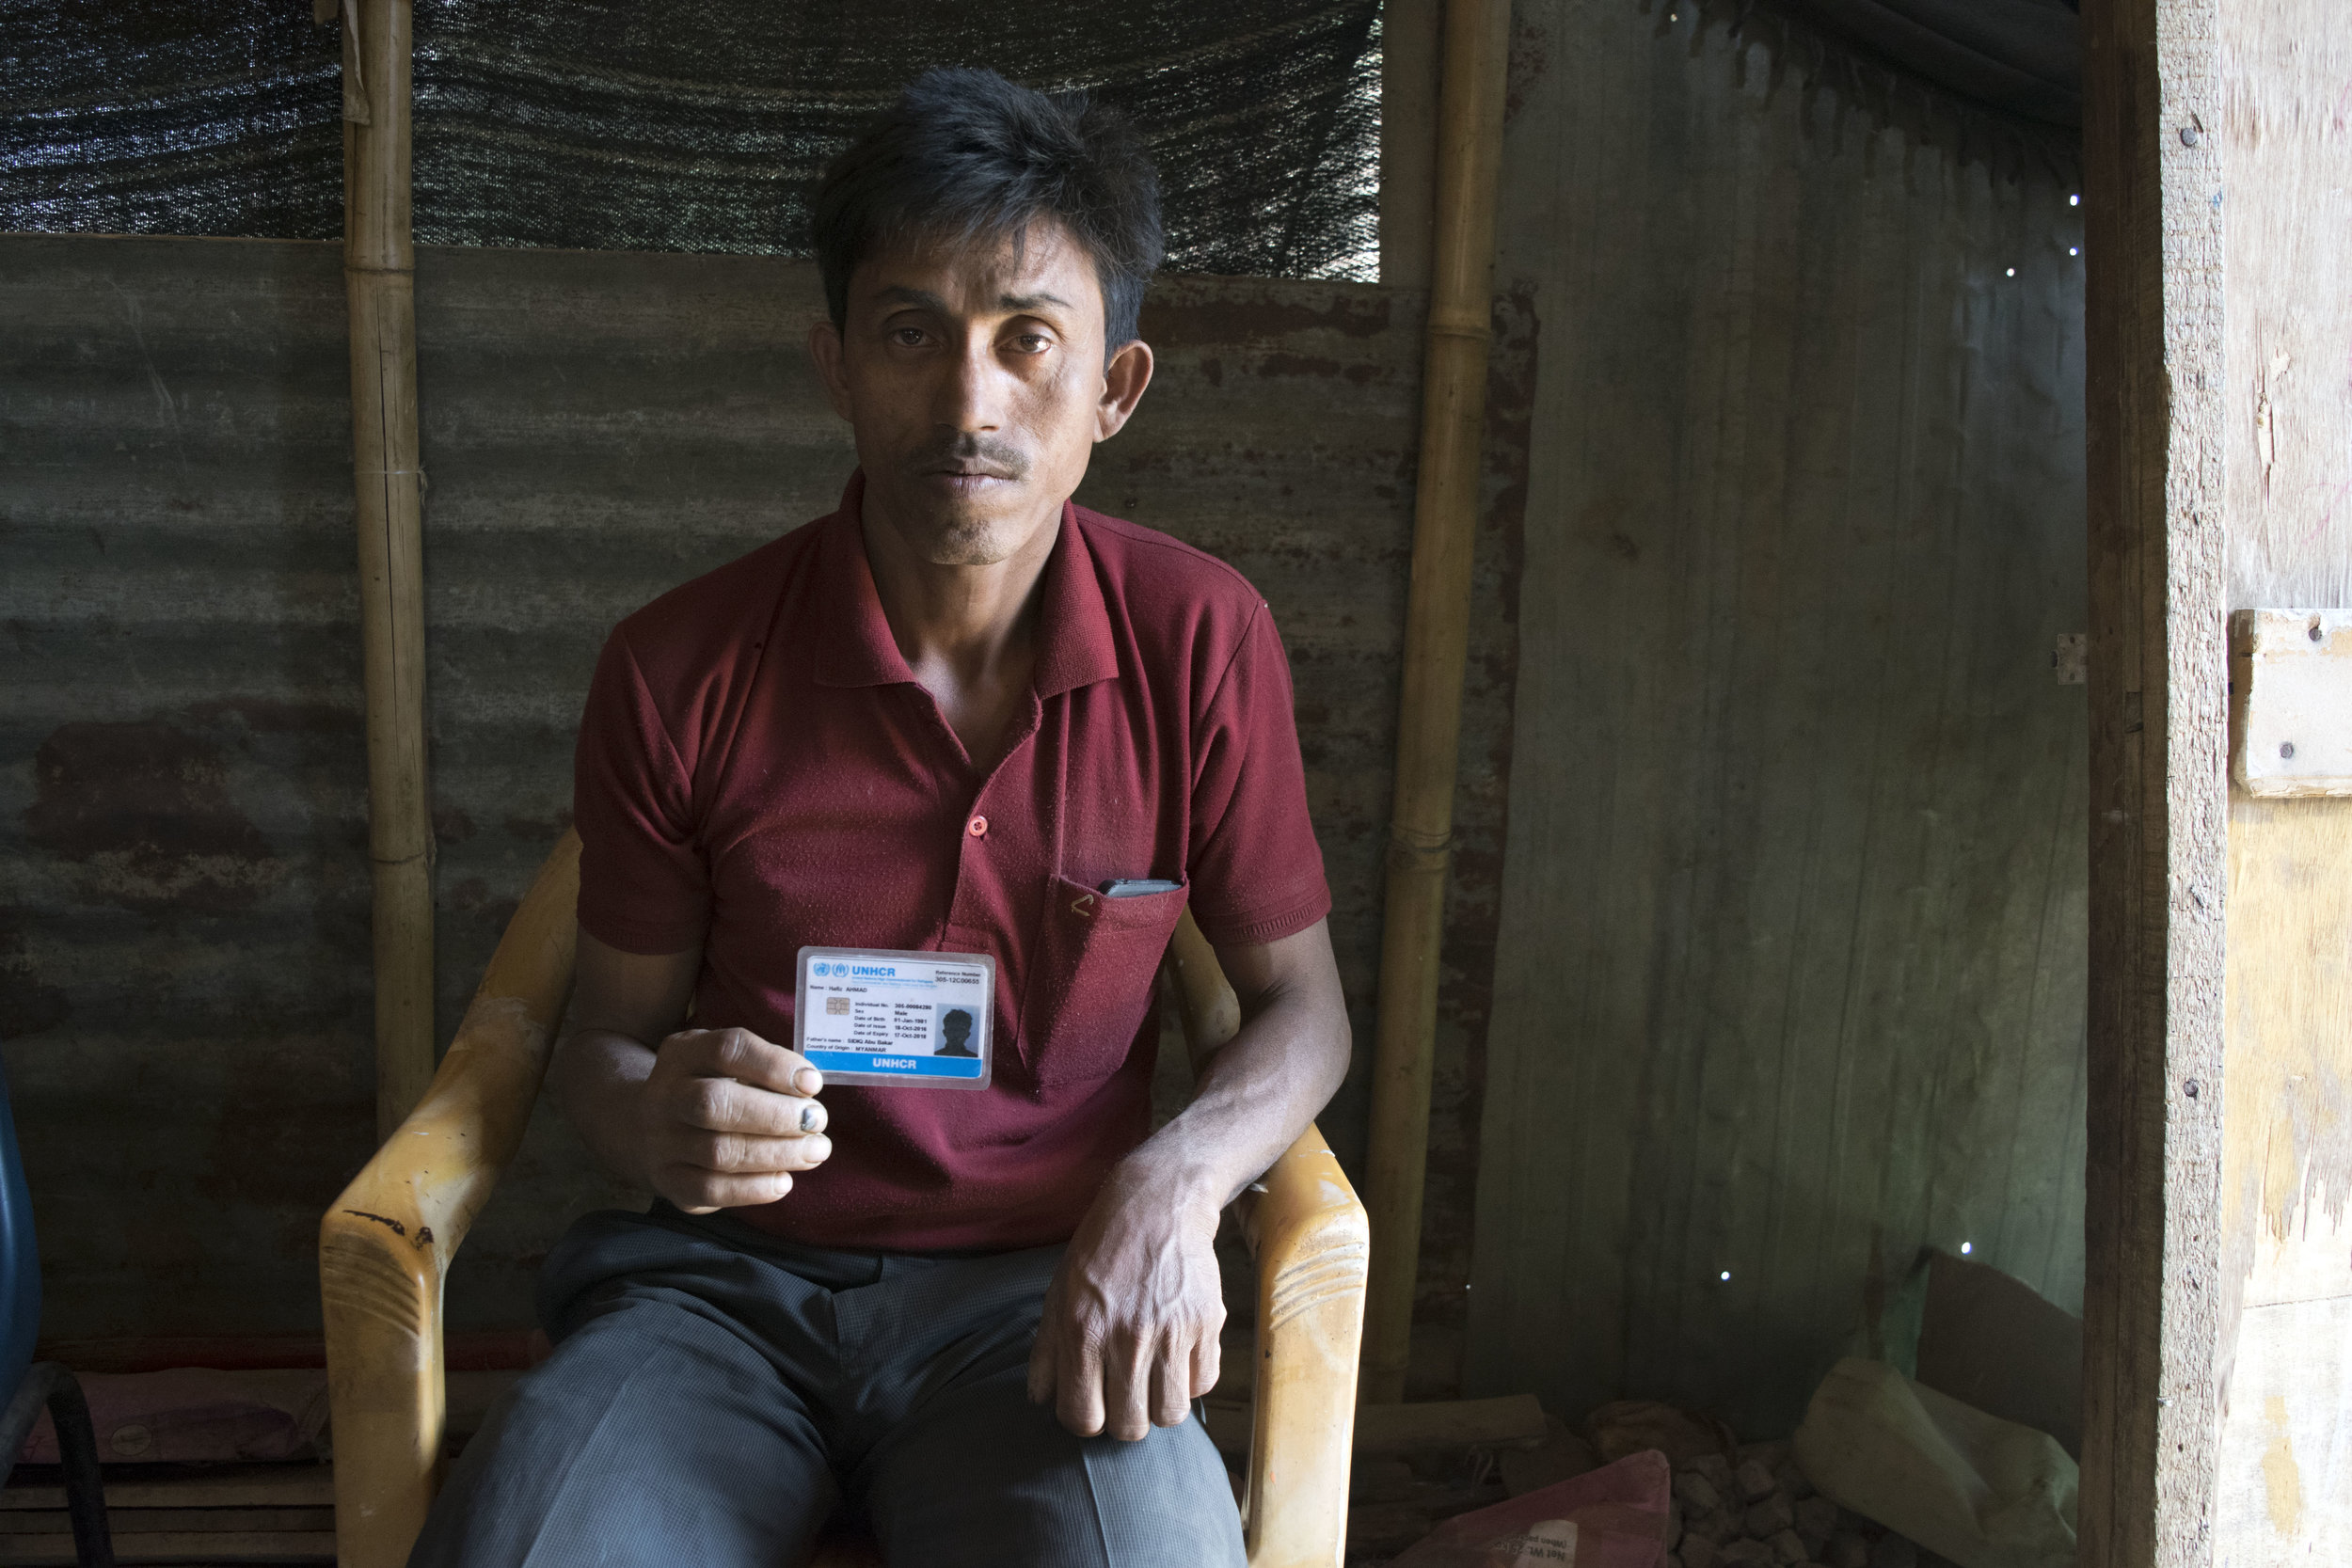 A Rohingya refugee holds up his UN-issued identity card, his only identity document as a stateless person. Photo by Meagan Clark.